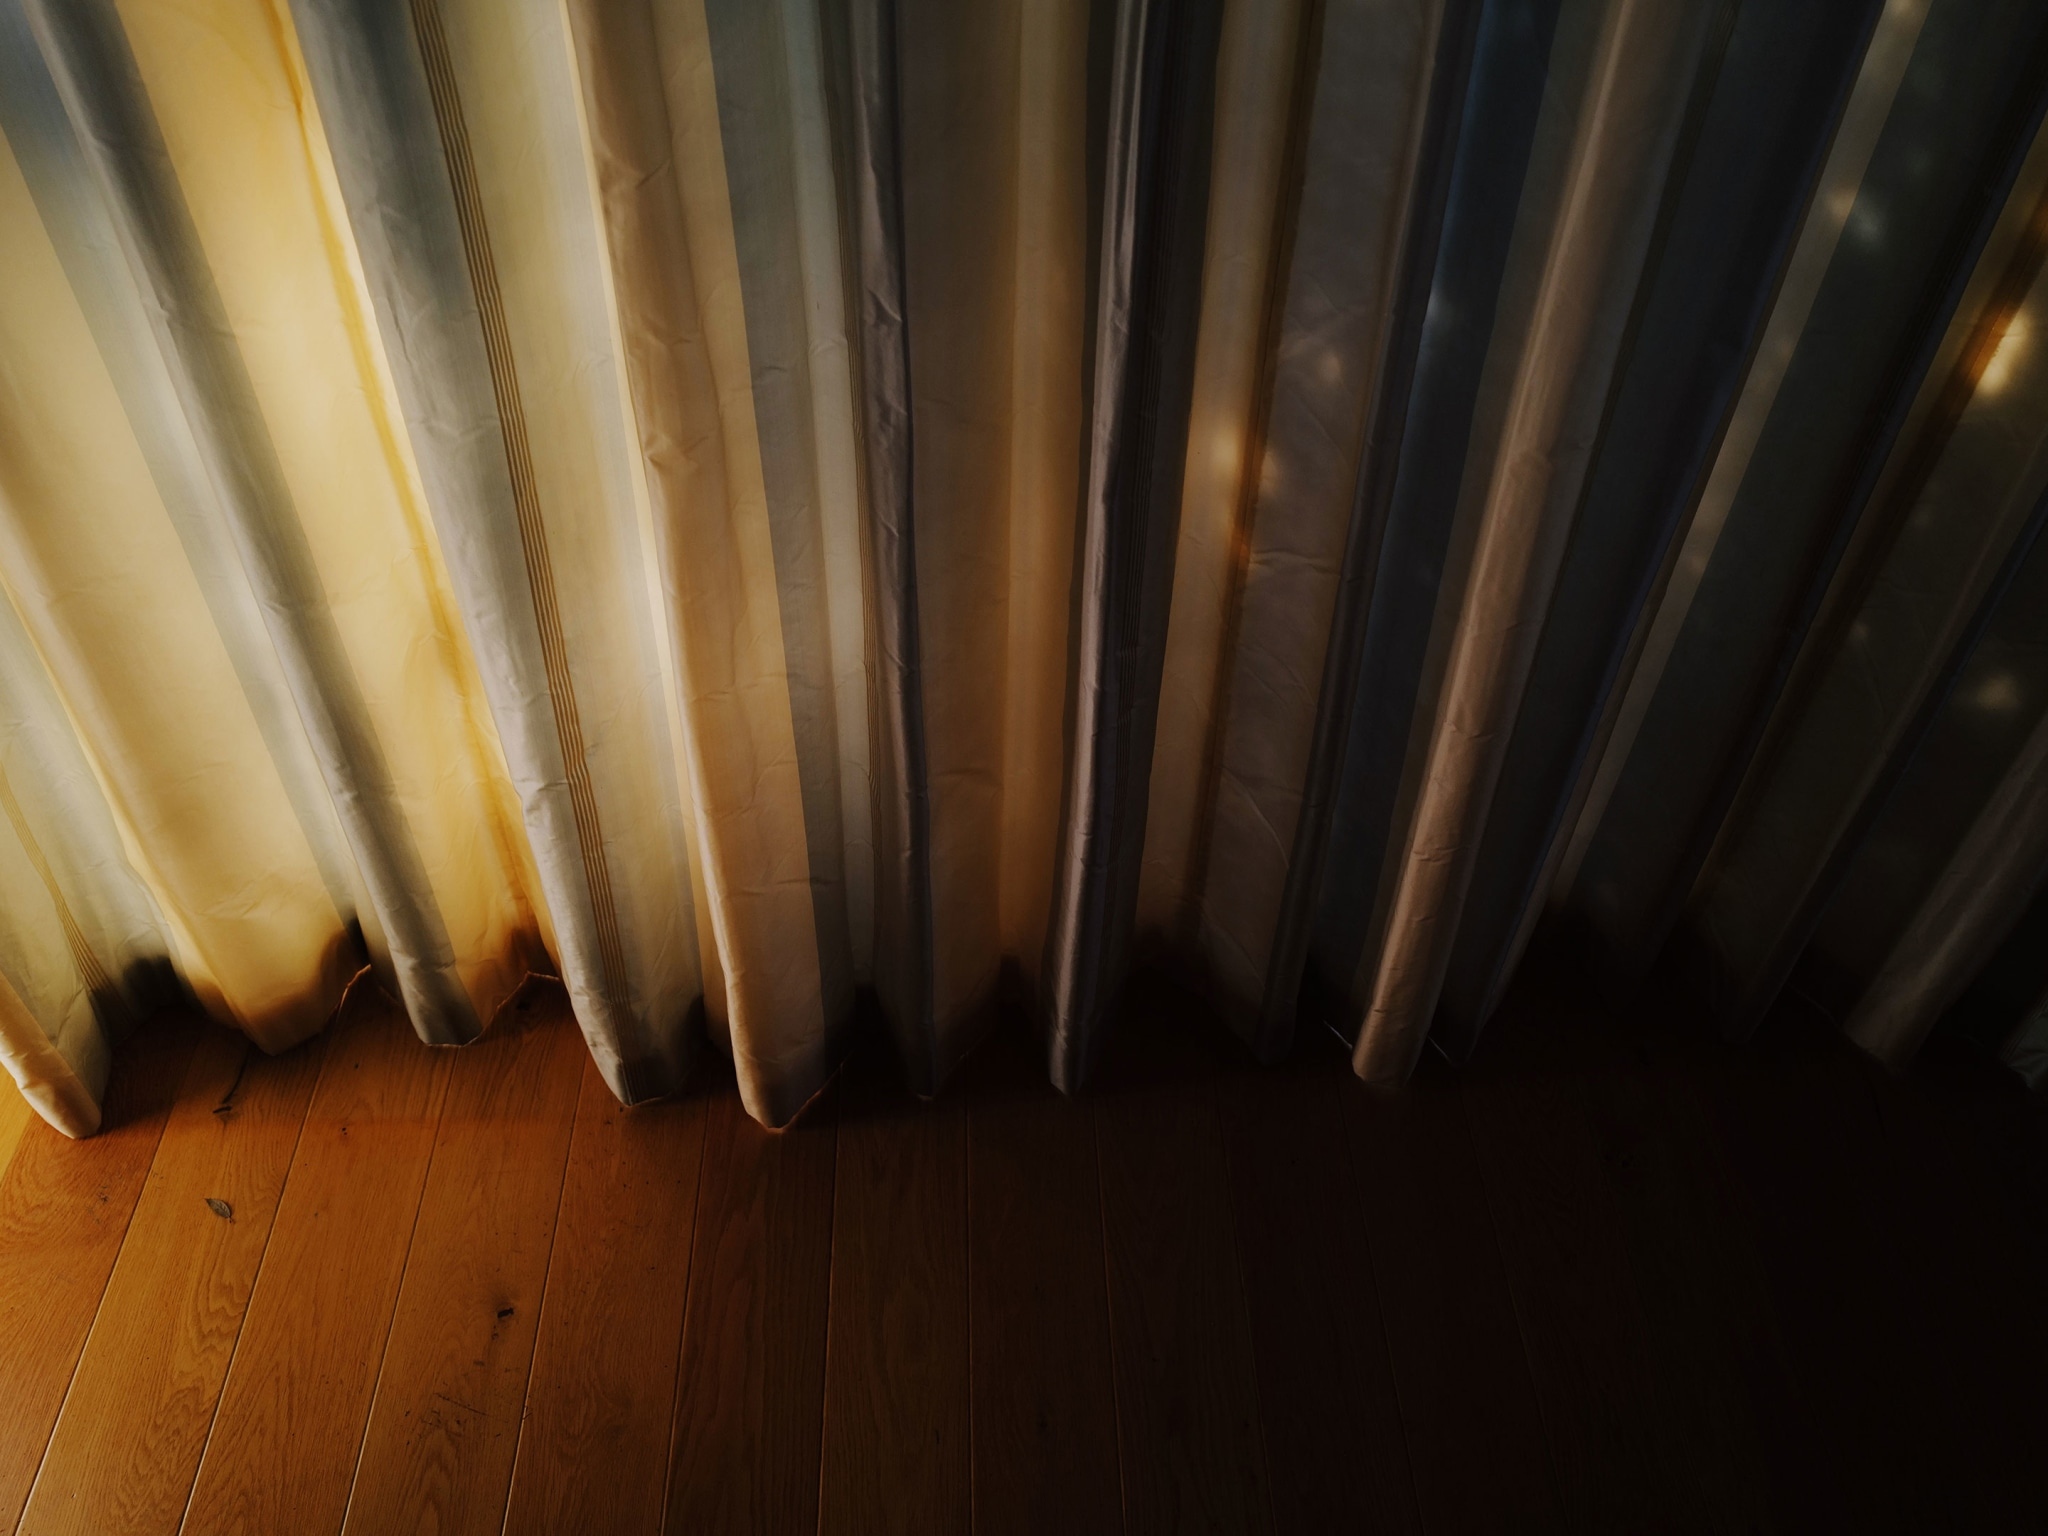 Curtains with sunset light on them.